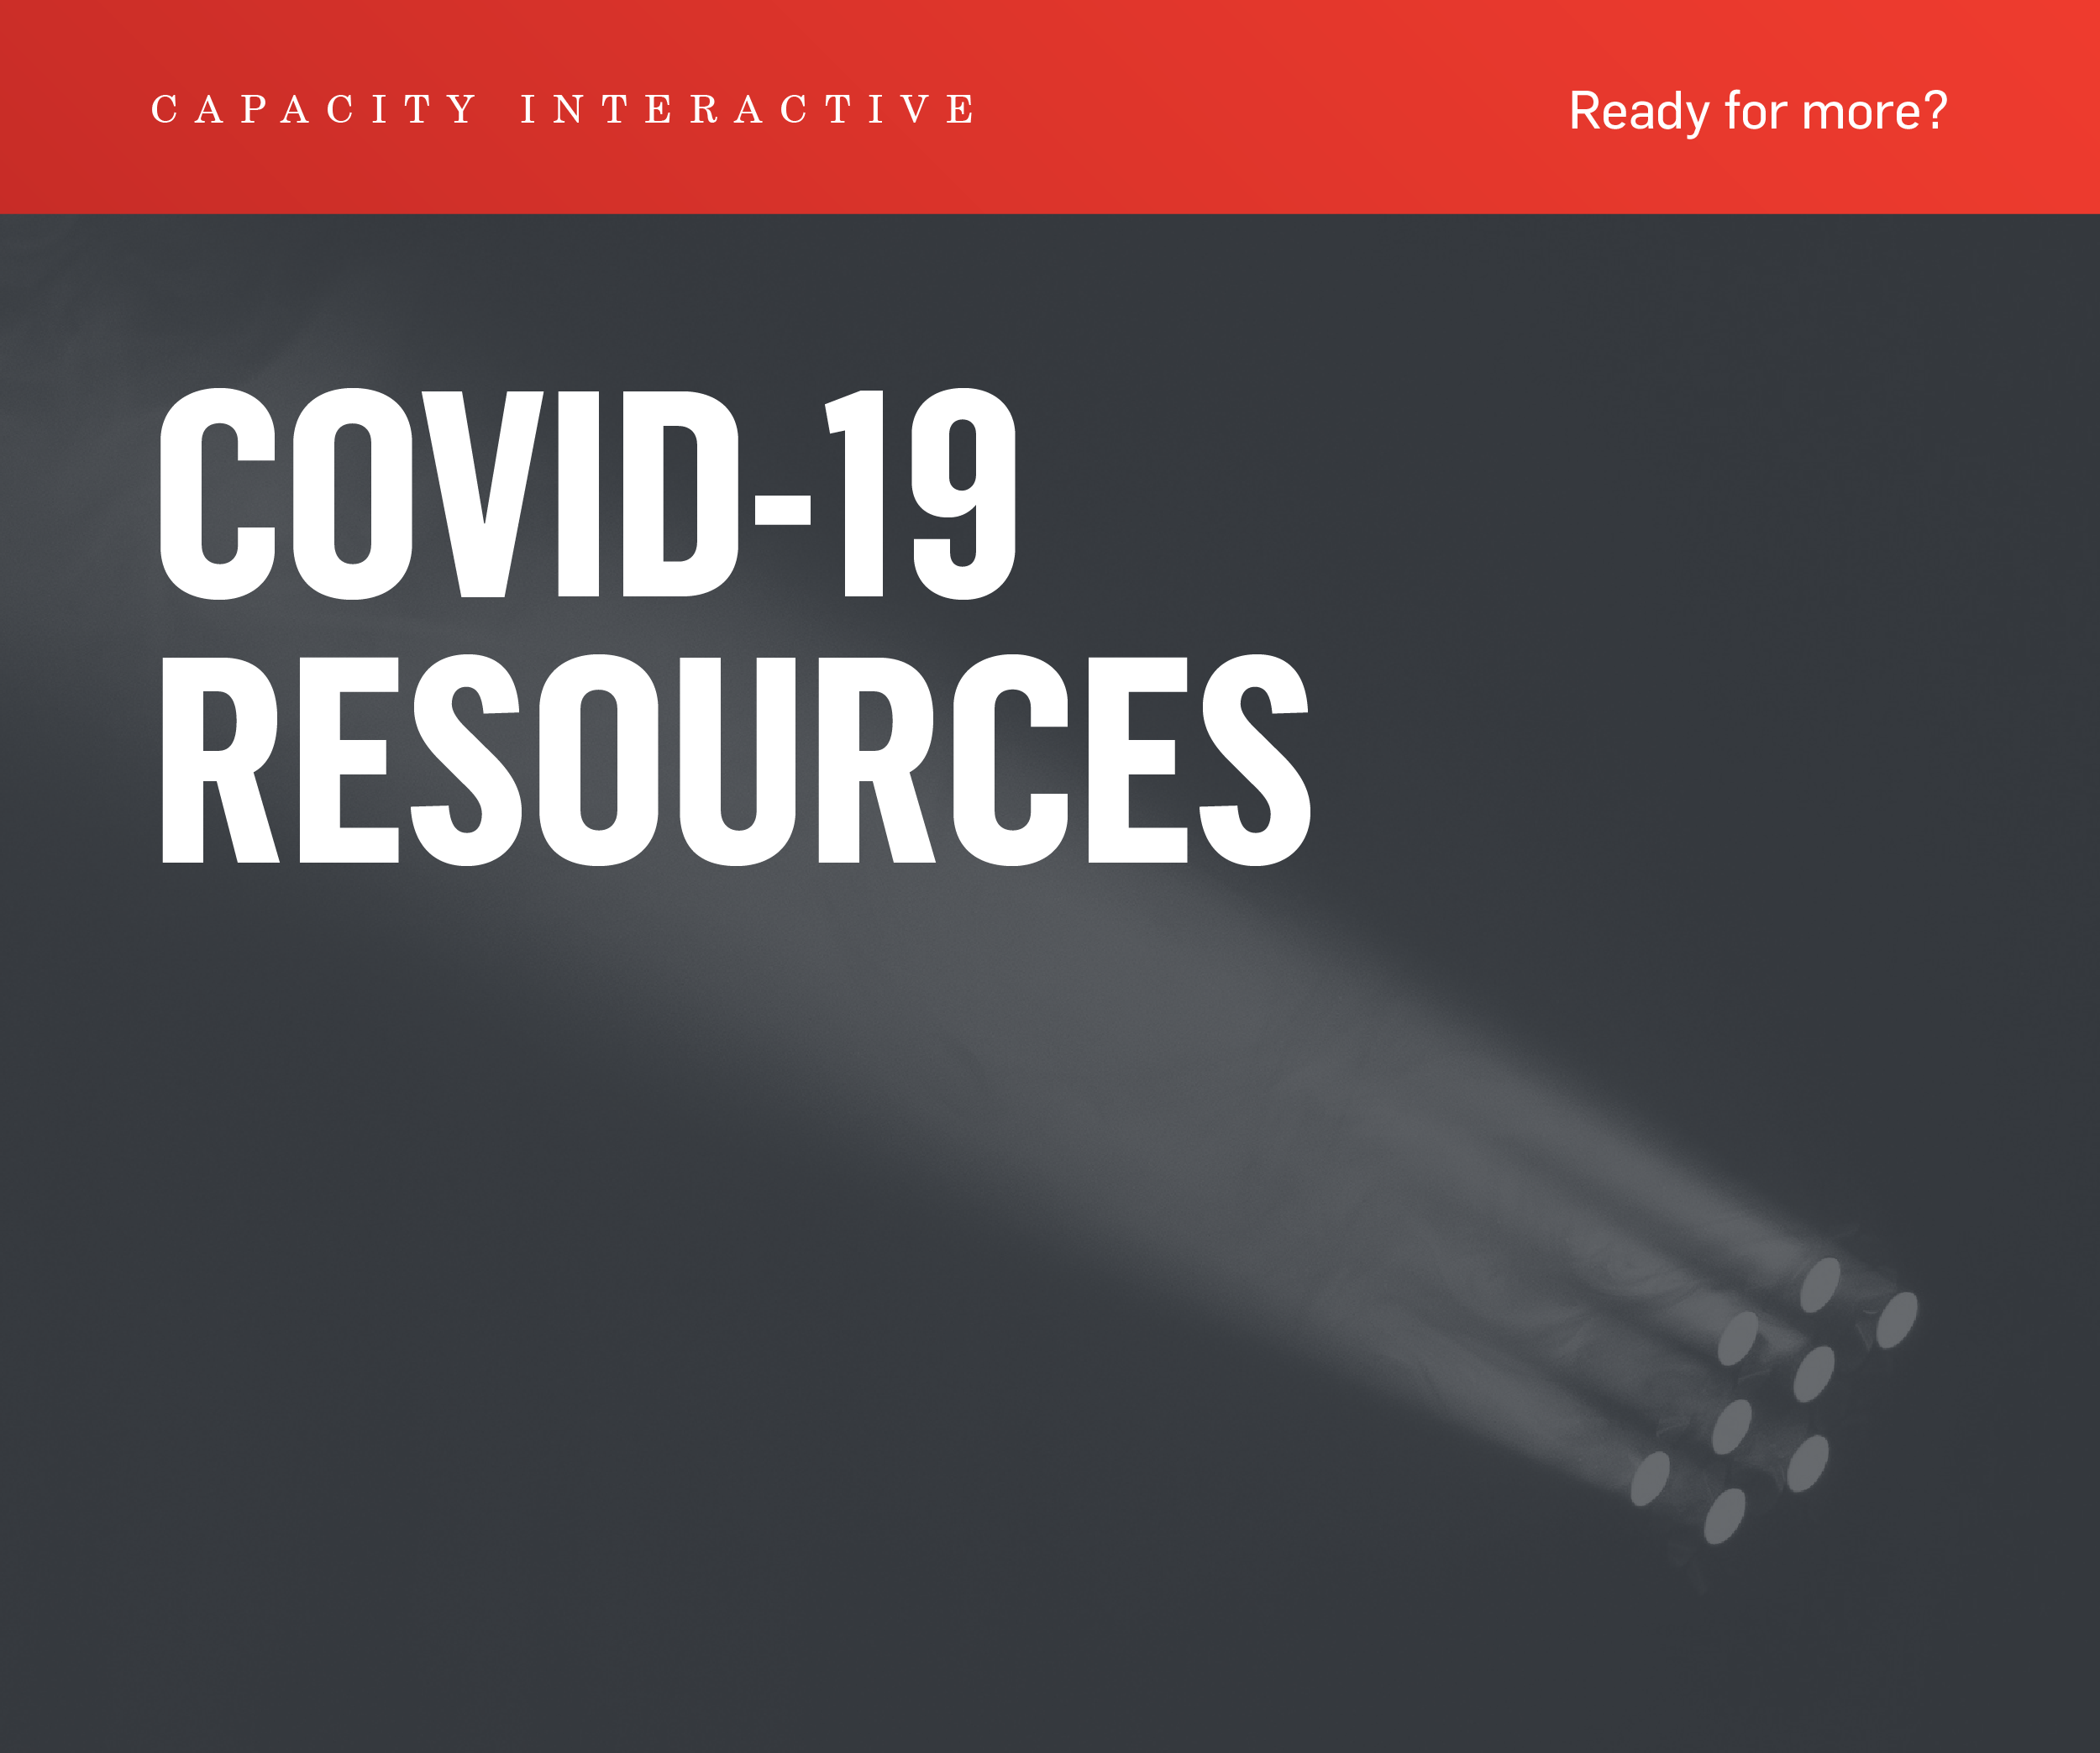 COVID-19 RESOURCES - Ready for more?